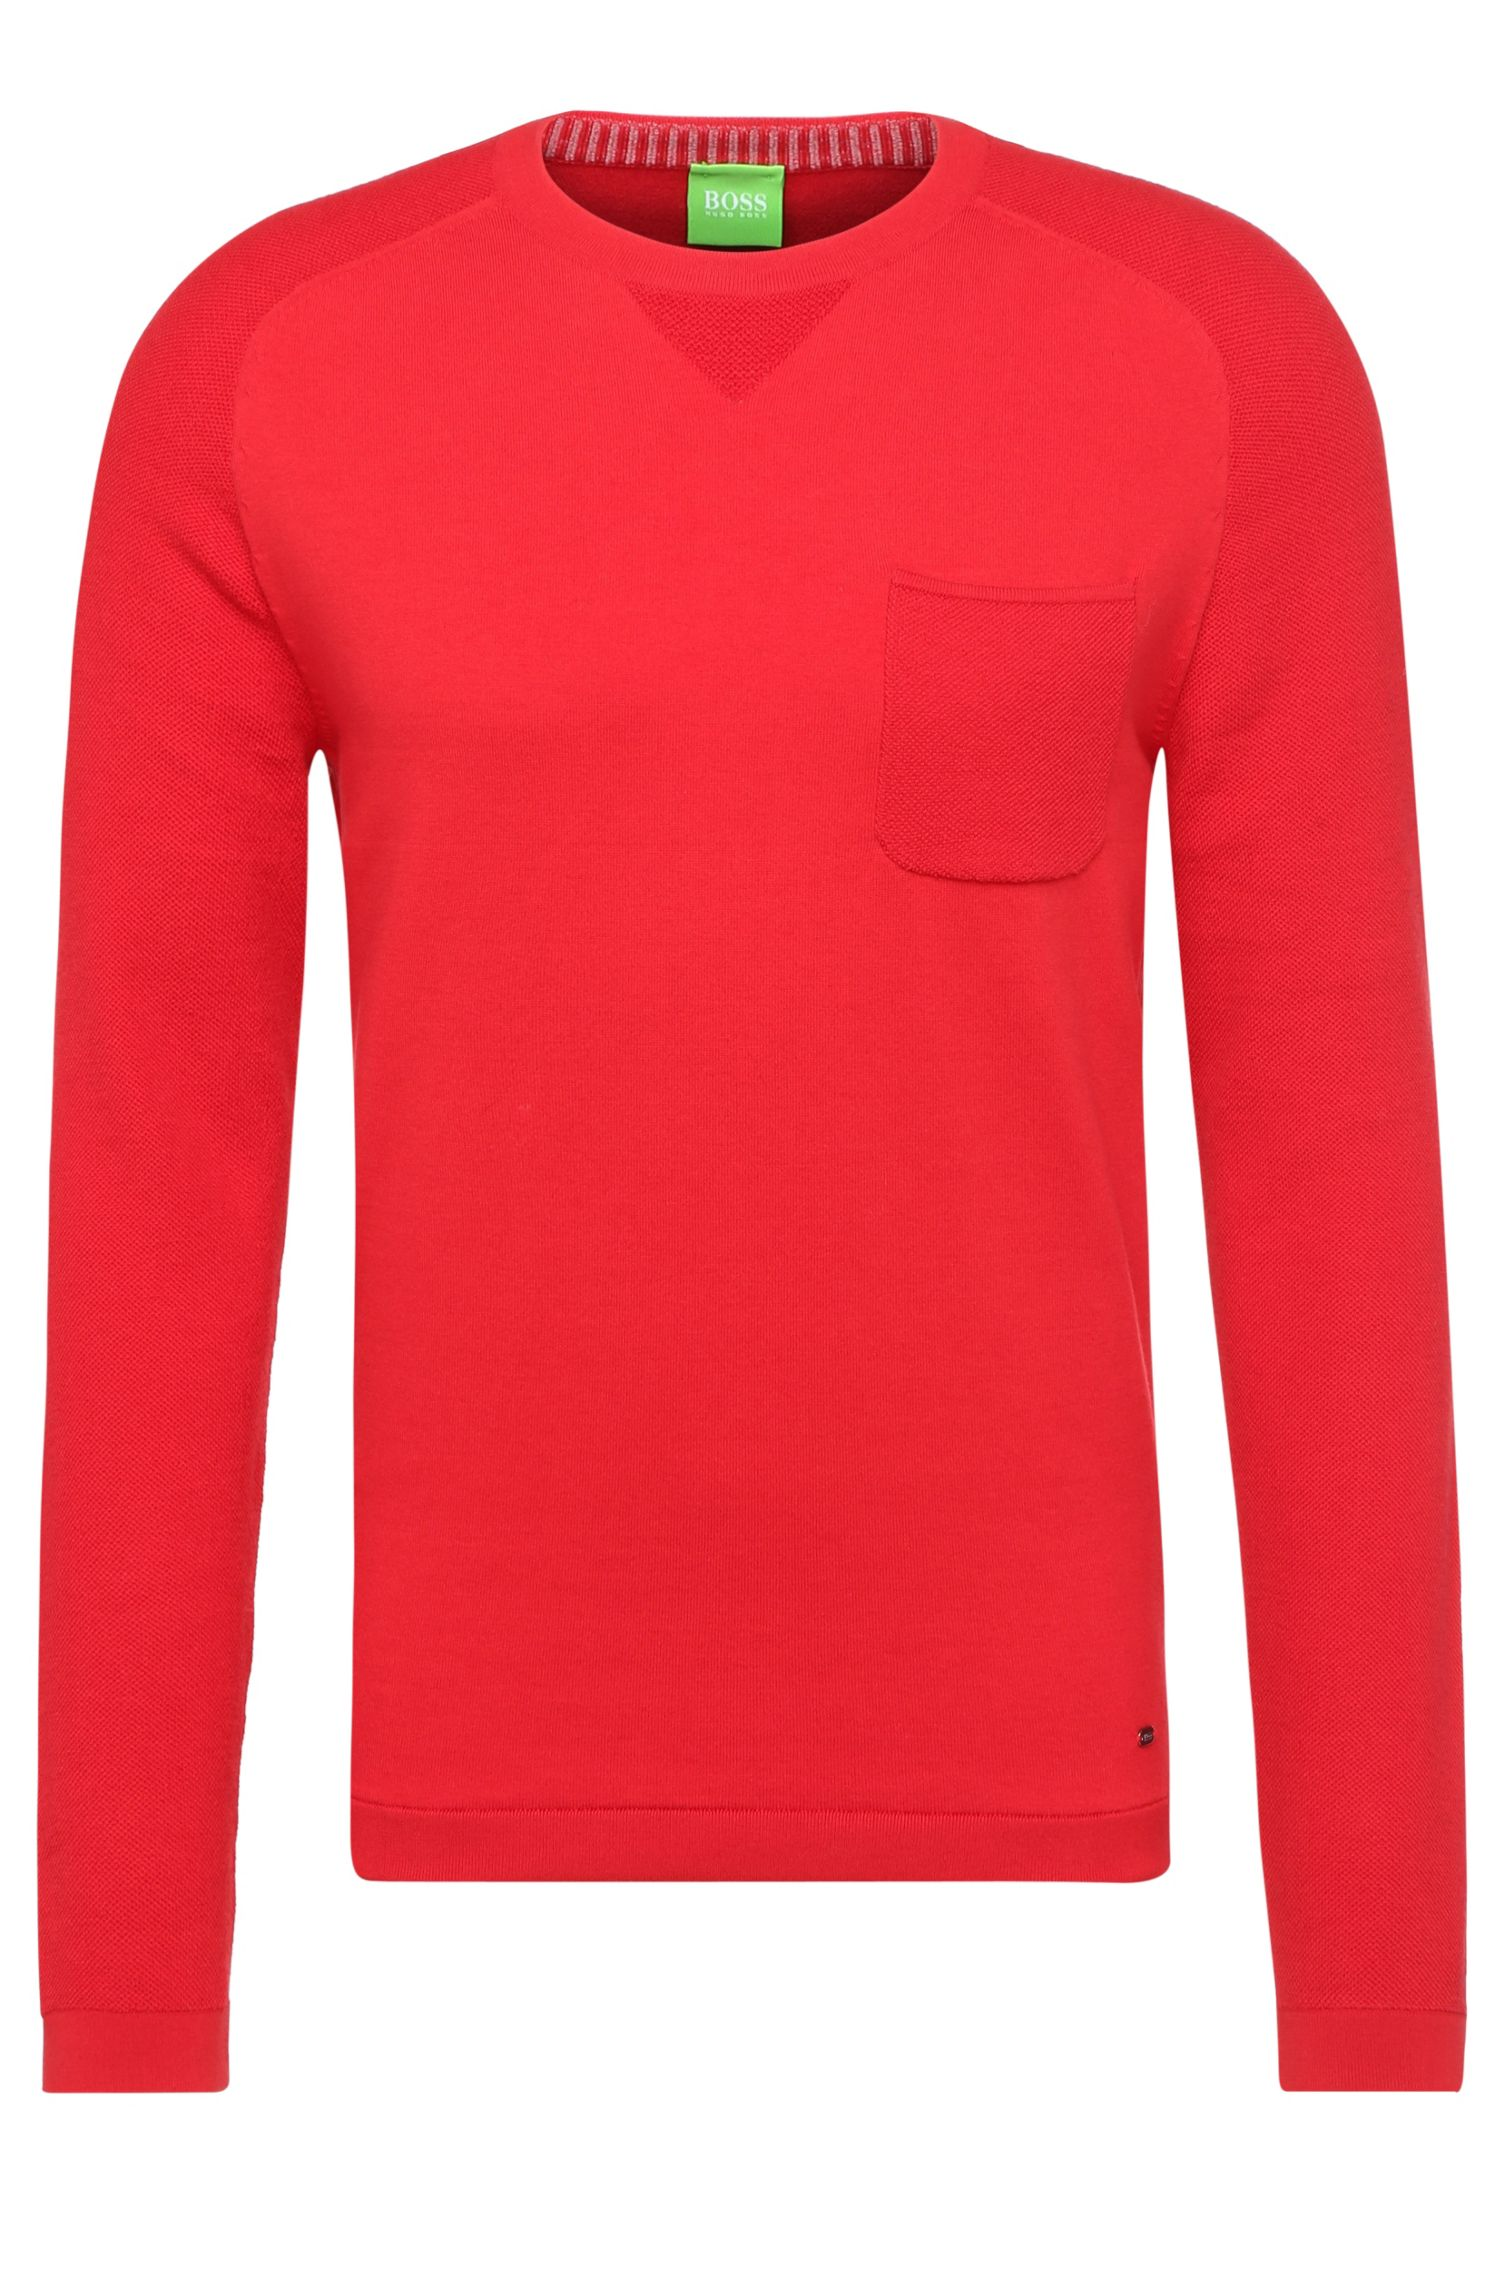 Slim-fit sweater in a cotton blend with elastane: 'Reight'